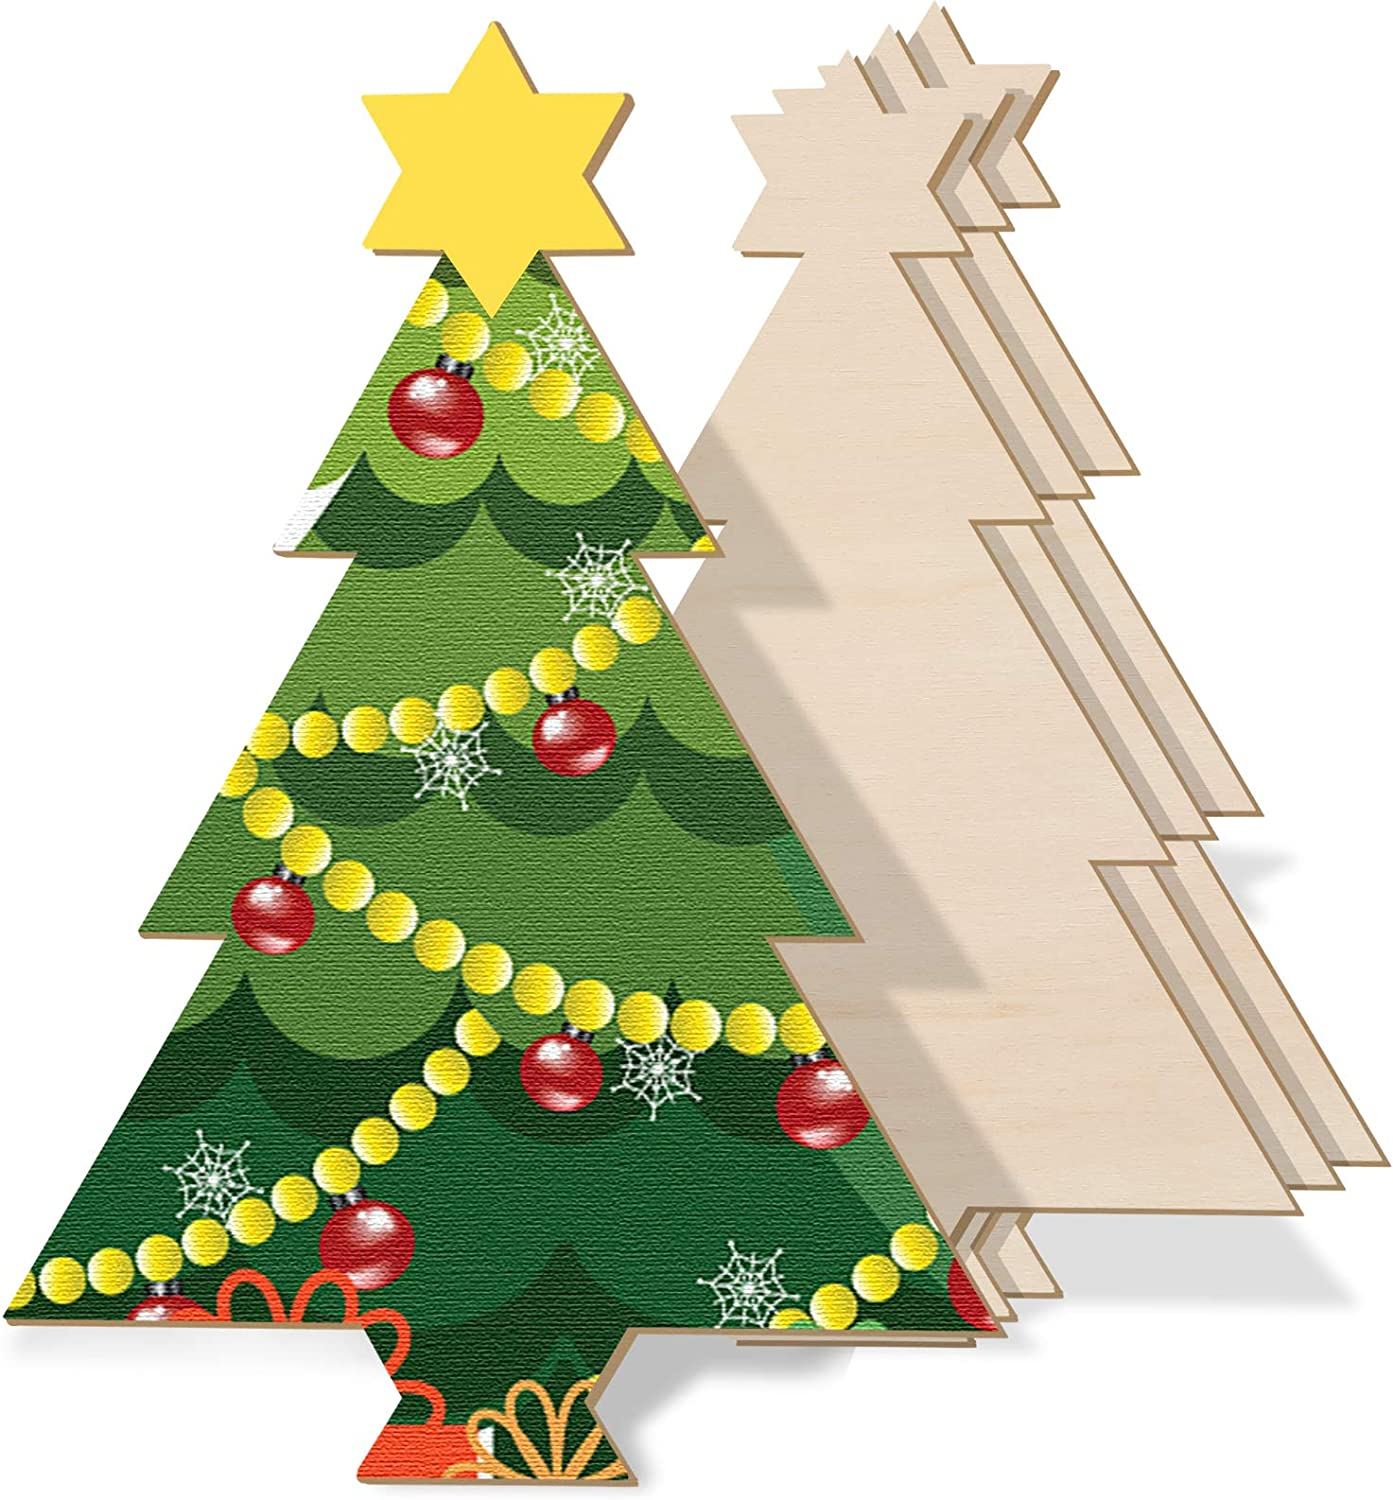 4 Pieces 15 x 10 Inch Christmas Wooden Ornaments Unfinished Set Tree Wood Craft Cutout Blank Christmas Tree Shape Cutout for Christmas Party DIY Decoration